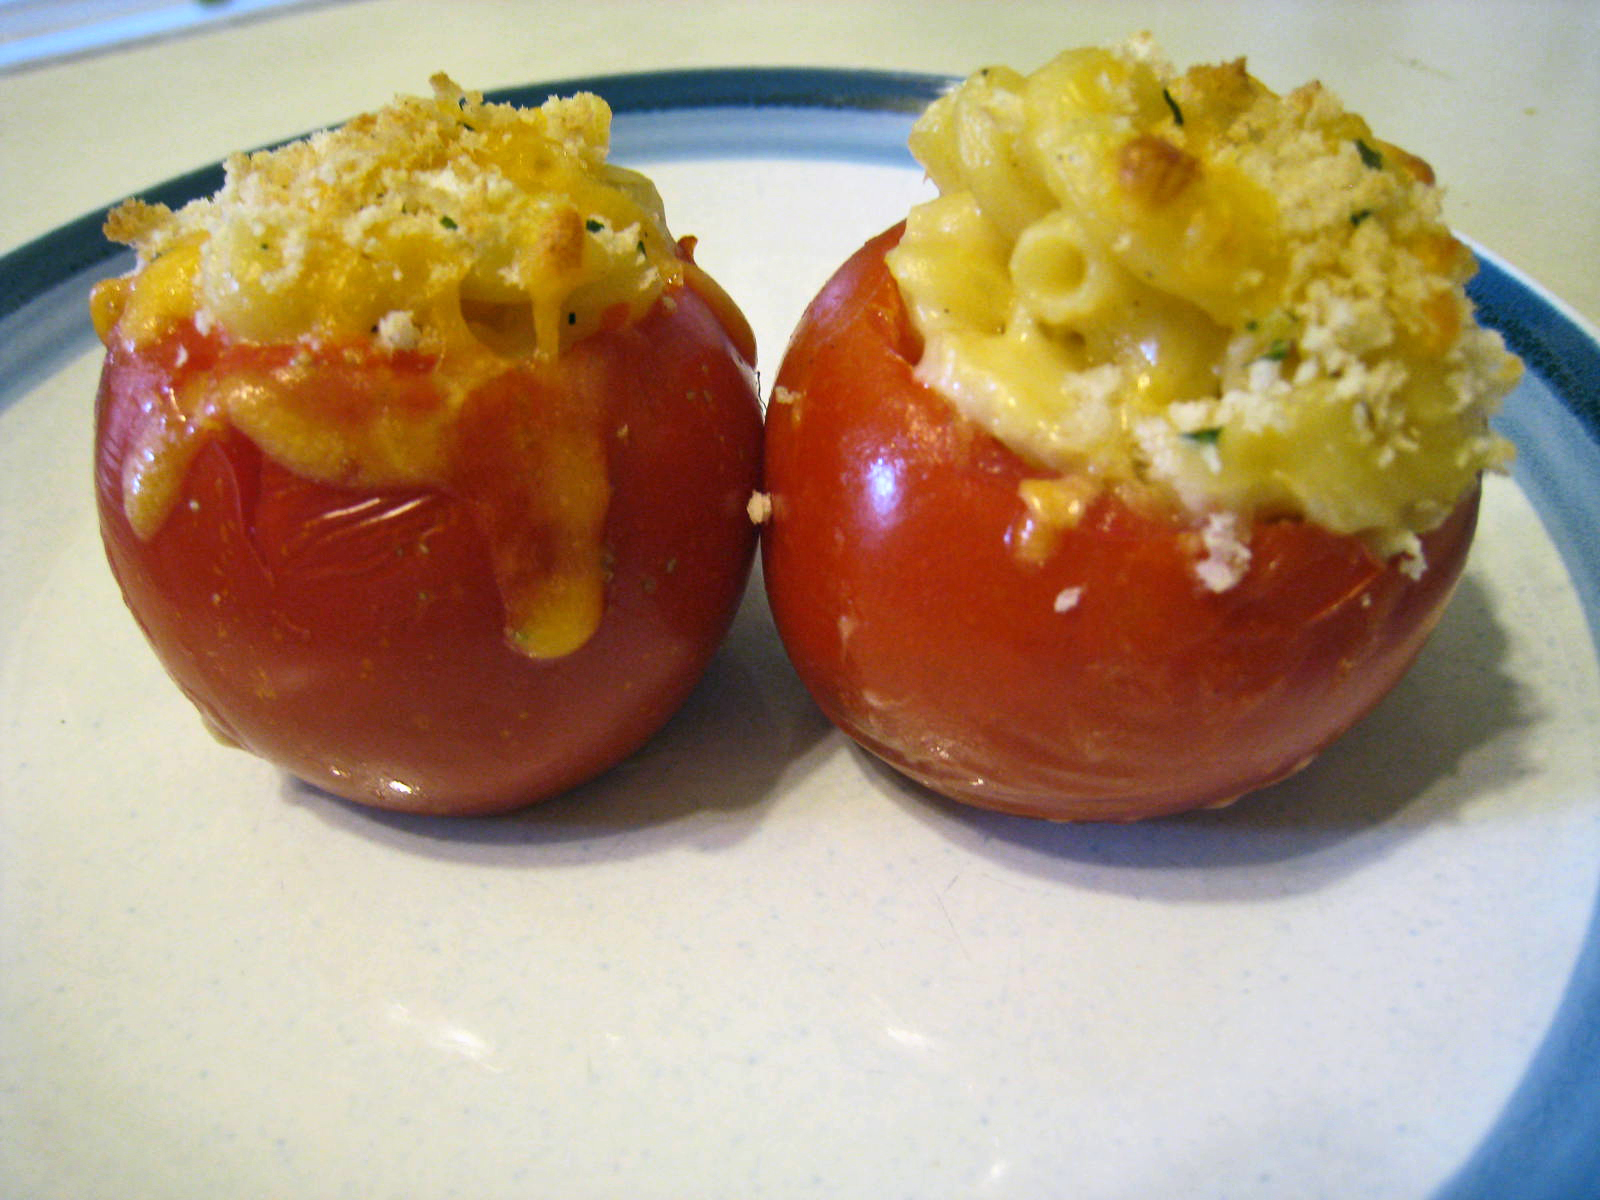 Join us, pull up a chair: Mac & Cheese Stuffed Tomatoes